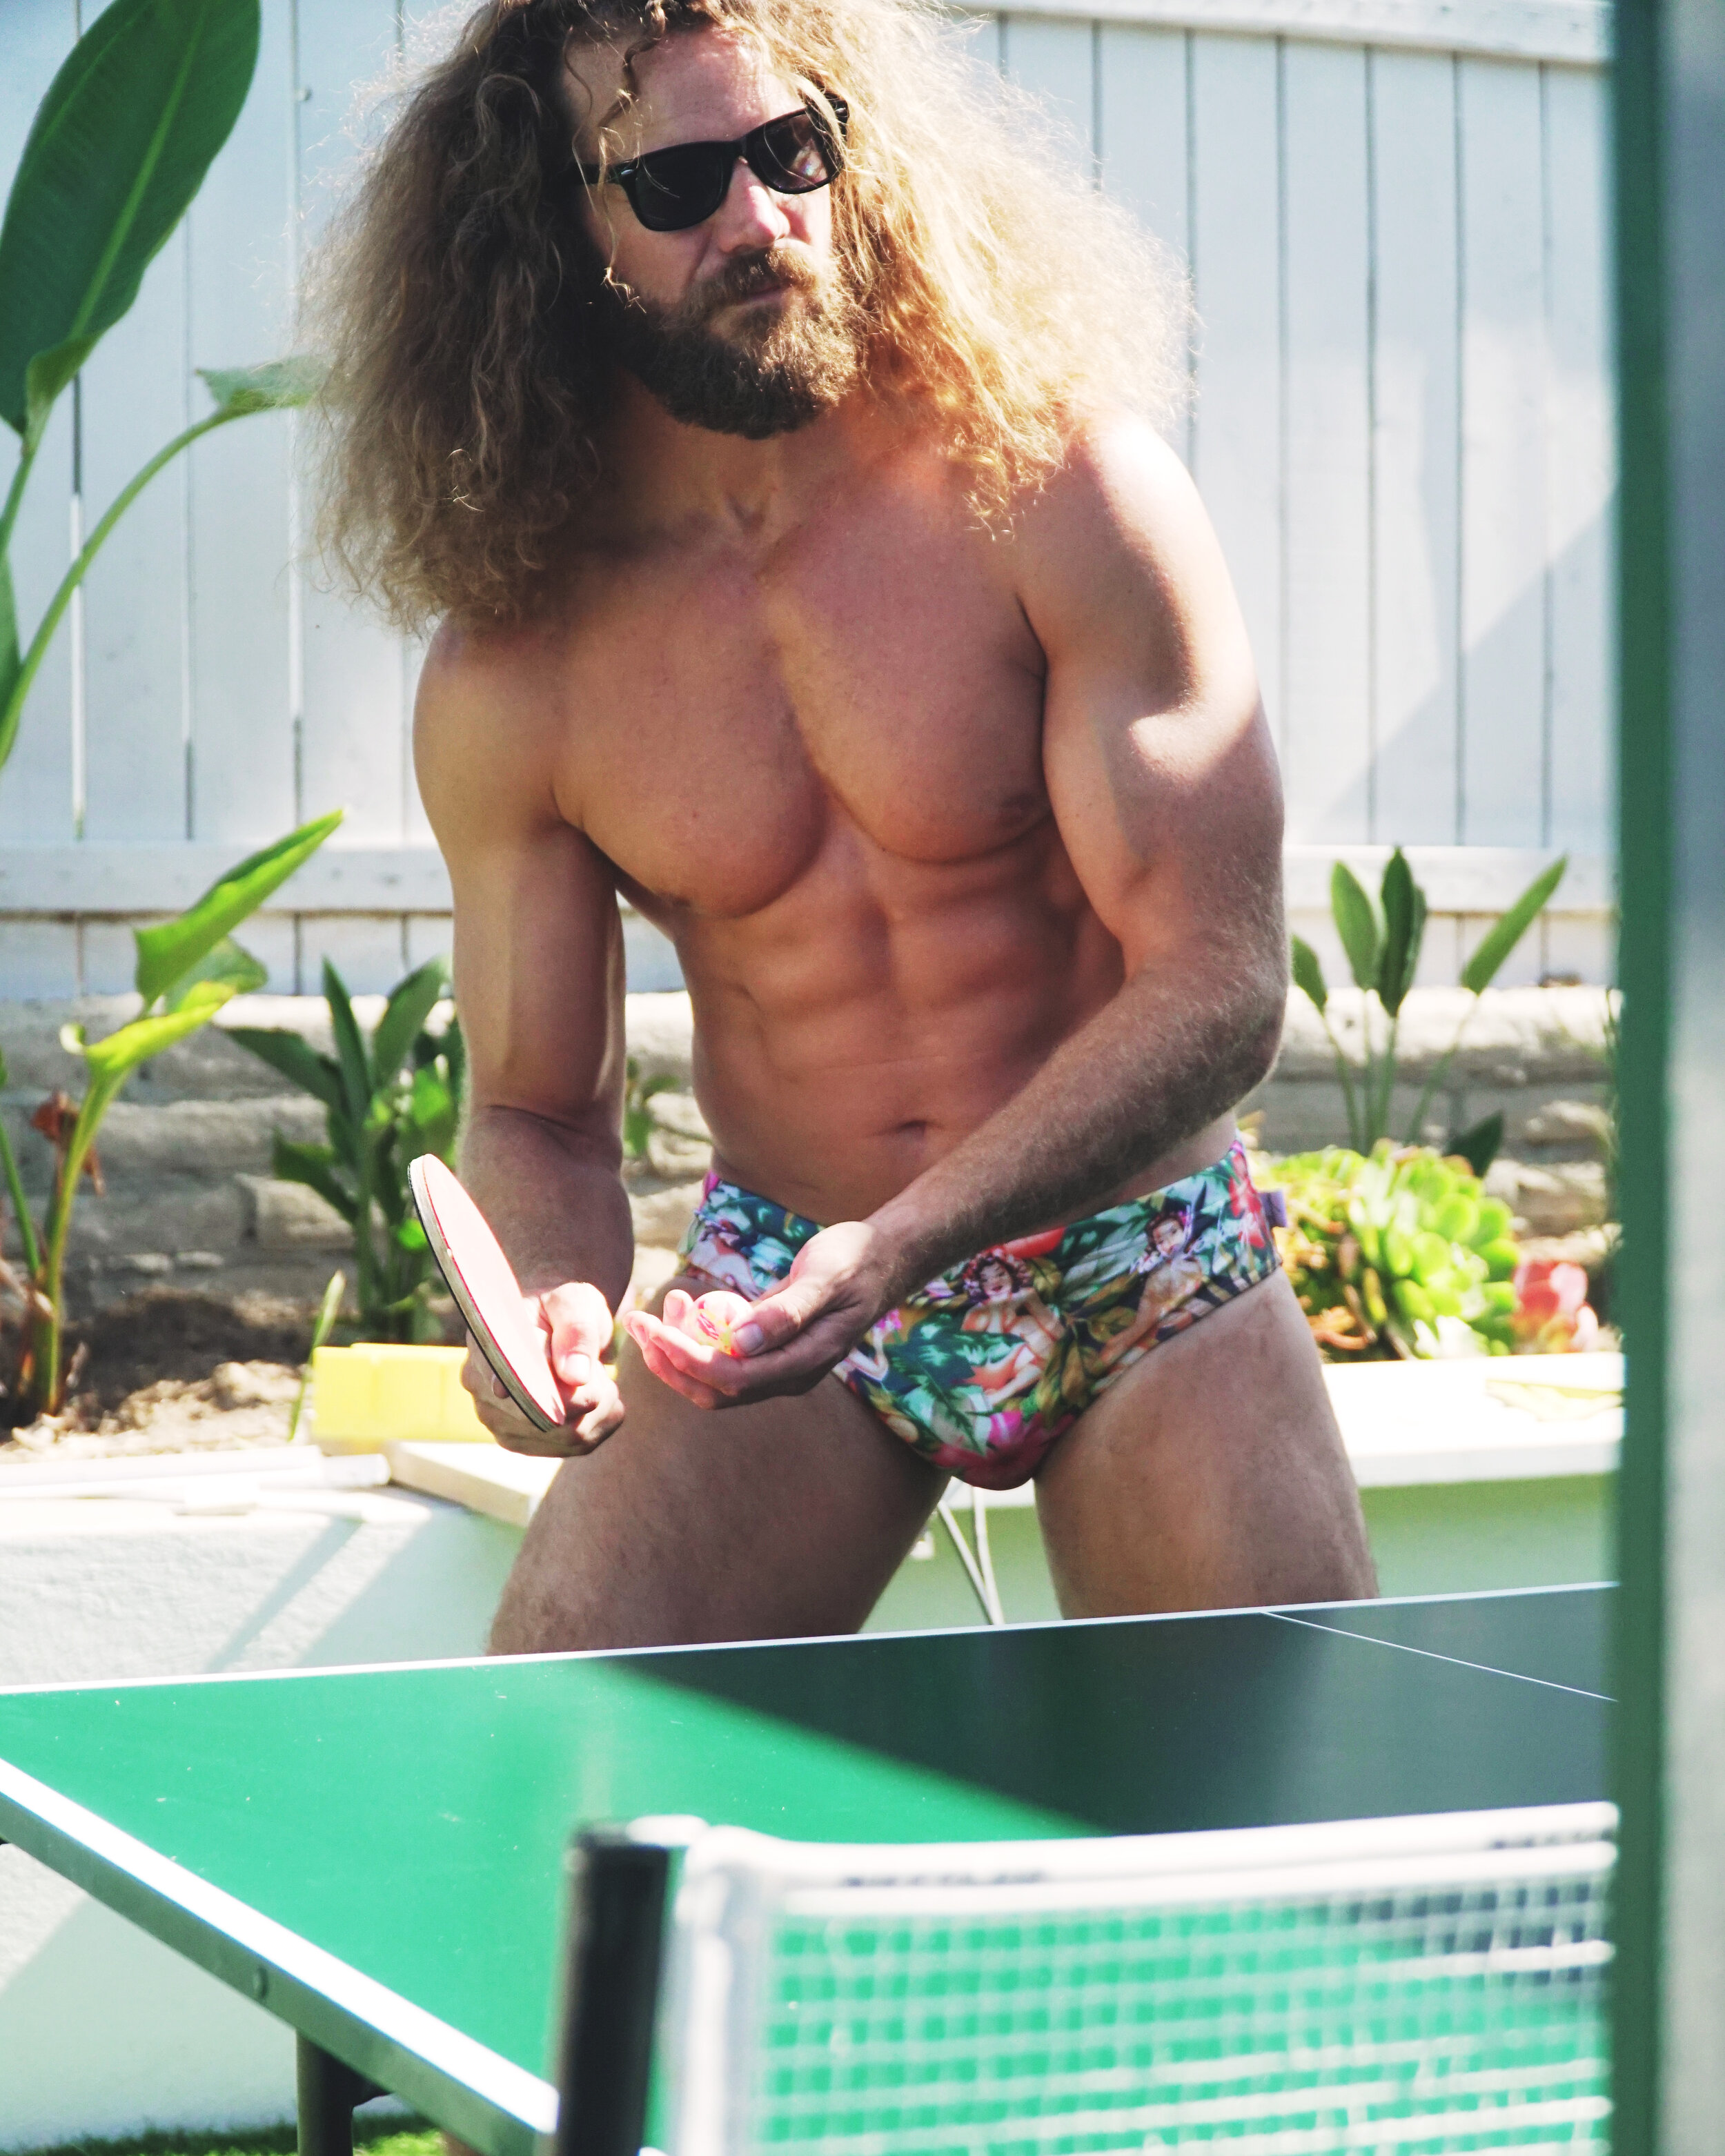 todd clever speedo table tennis